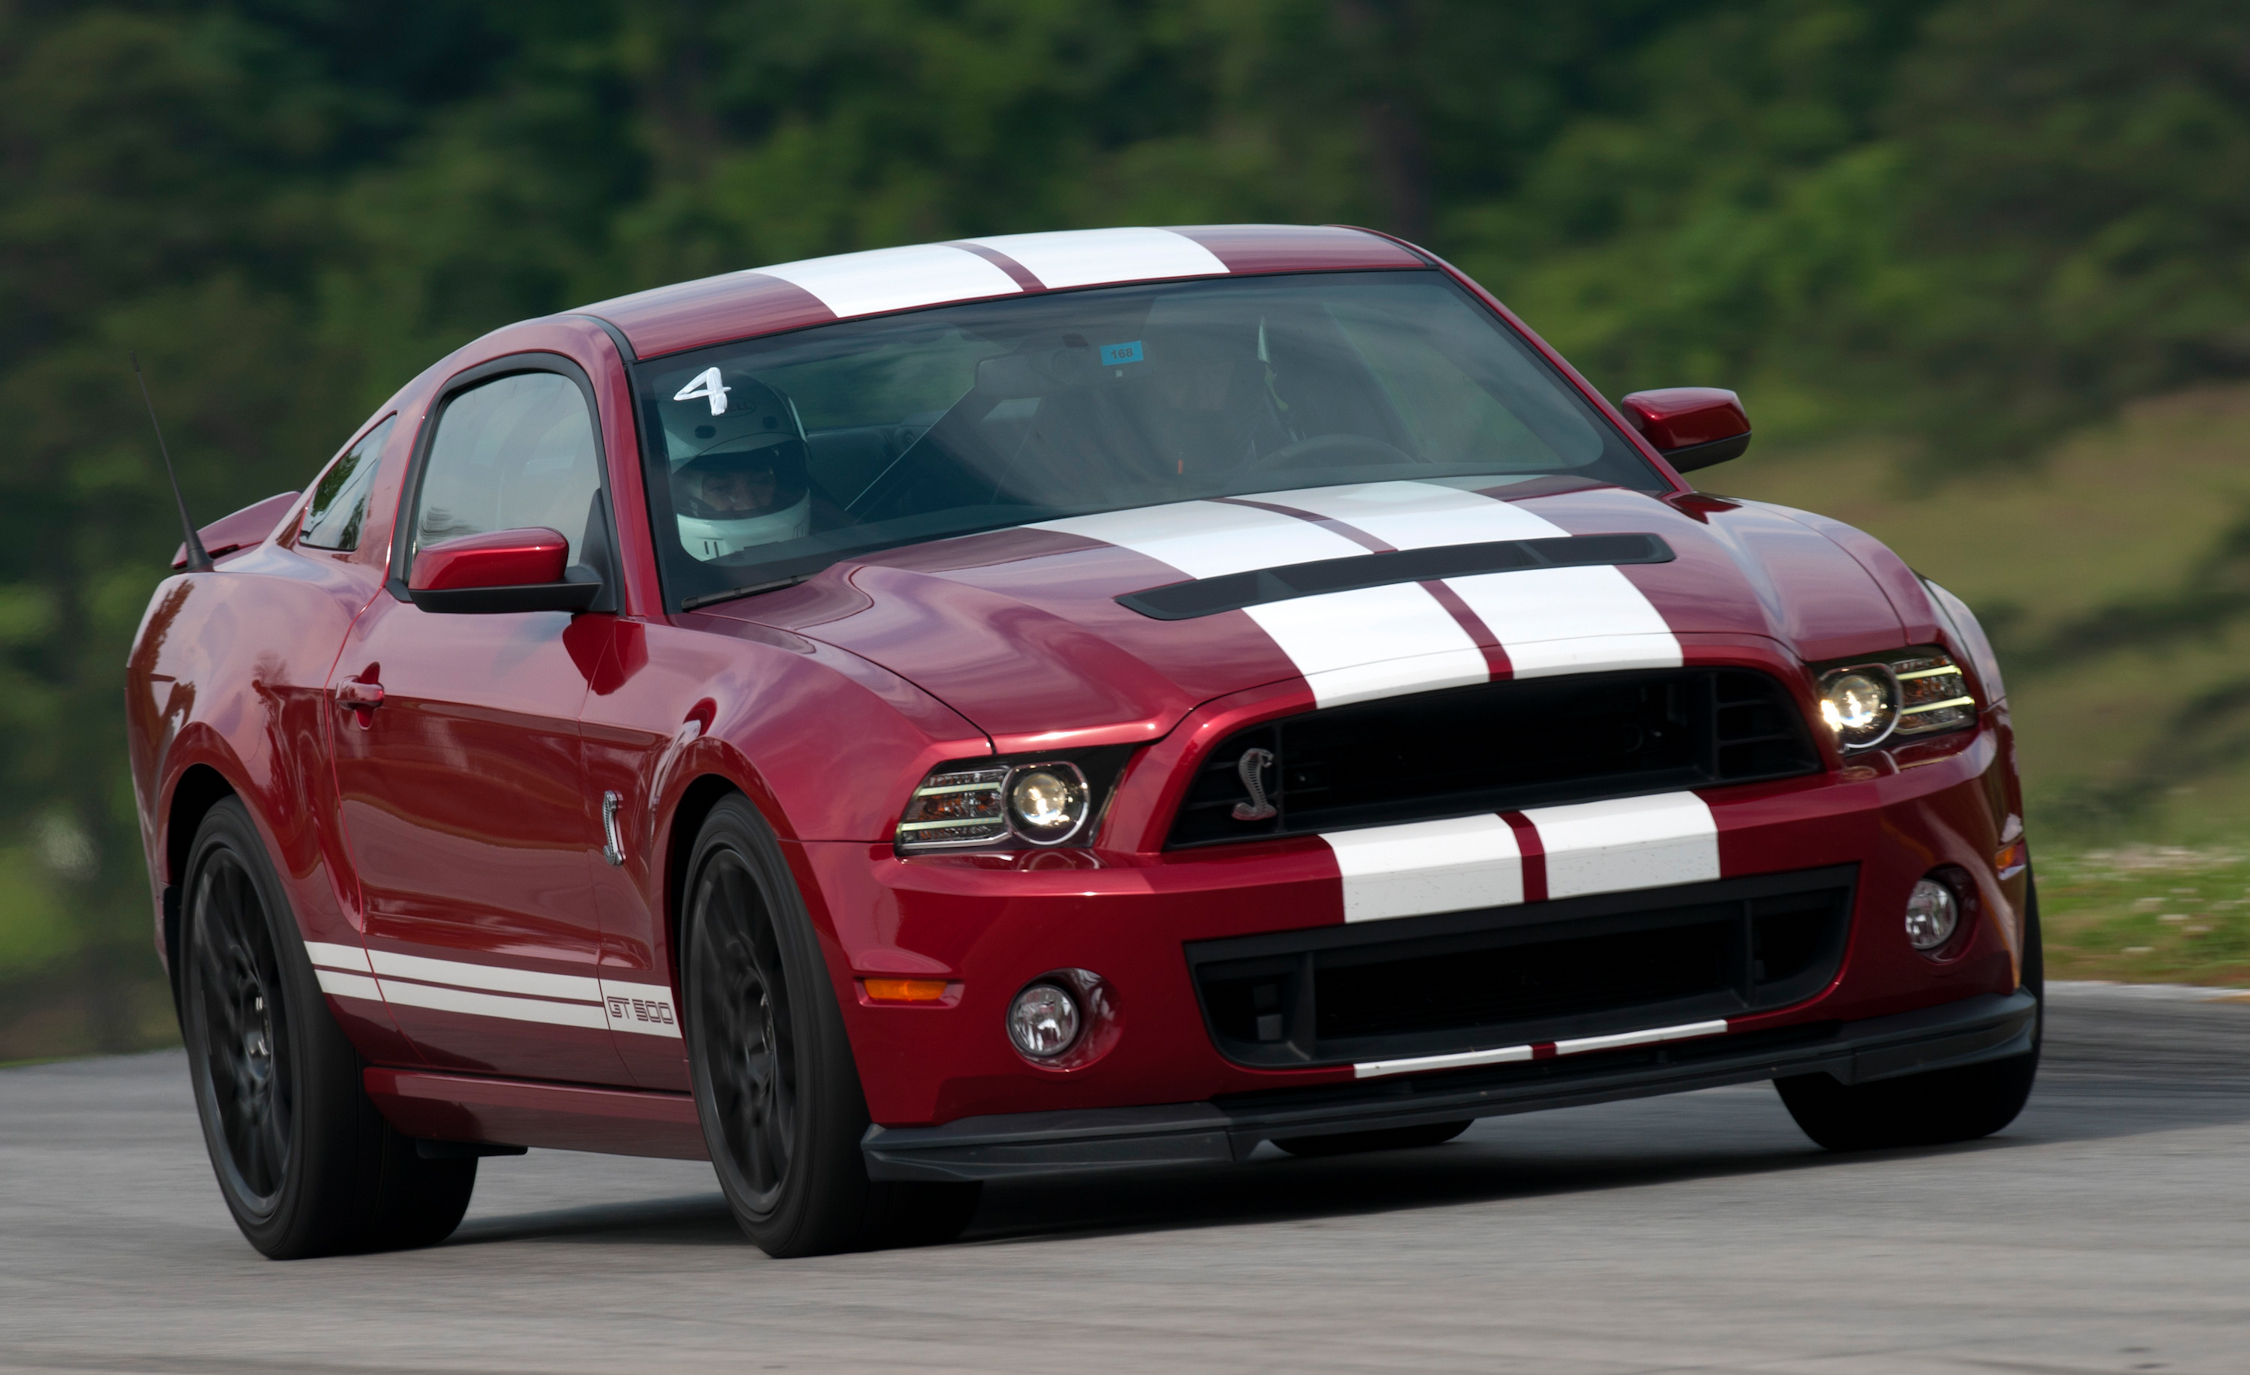 2013 Ford Mustang Shelby GT500 Red Test Drive Front And Side View (Photo 33 of 47)